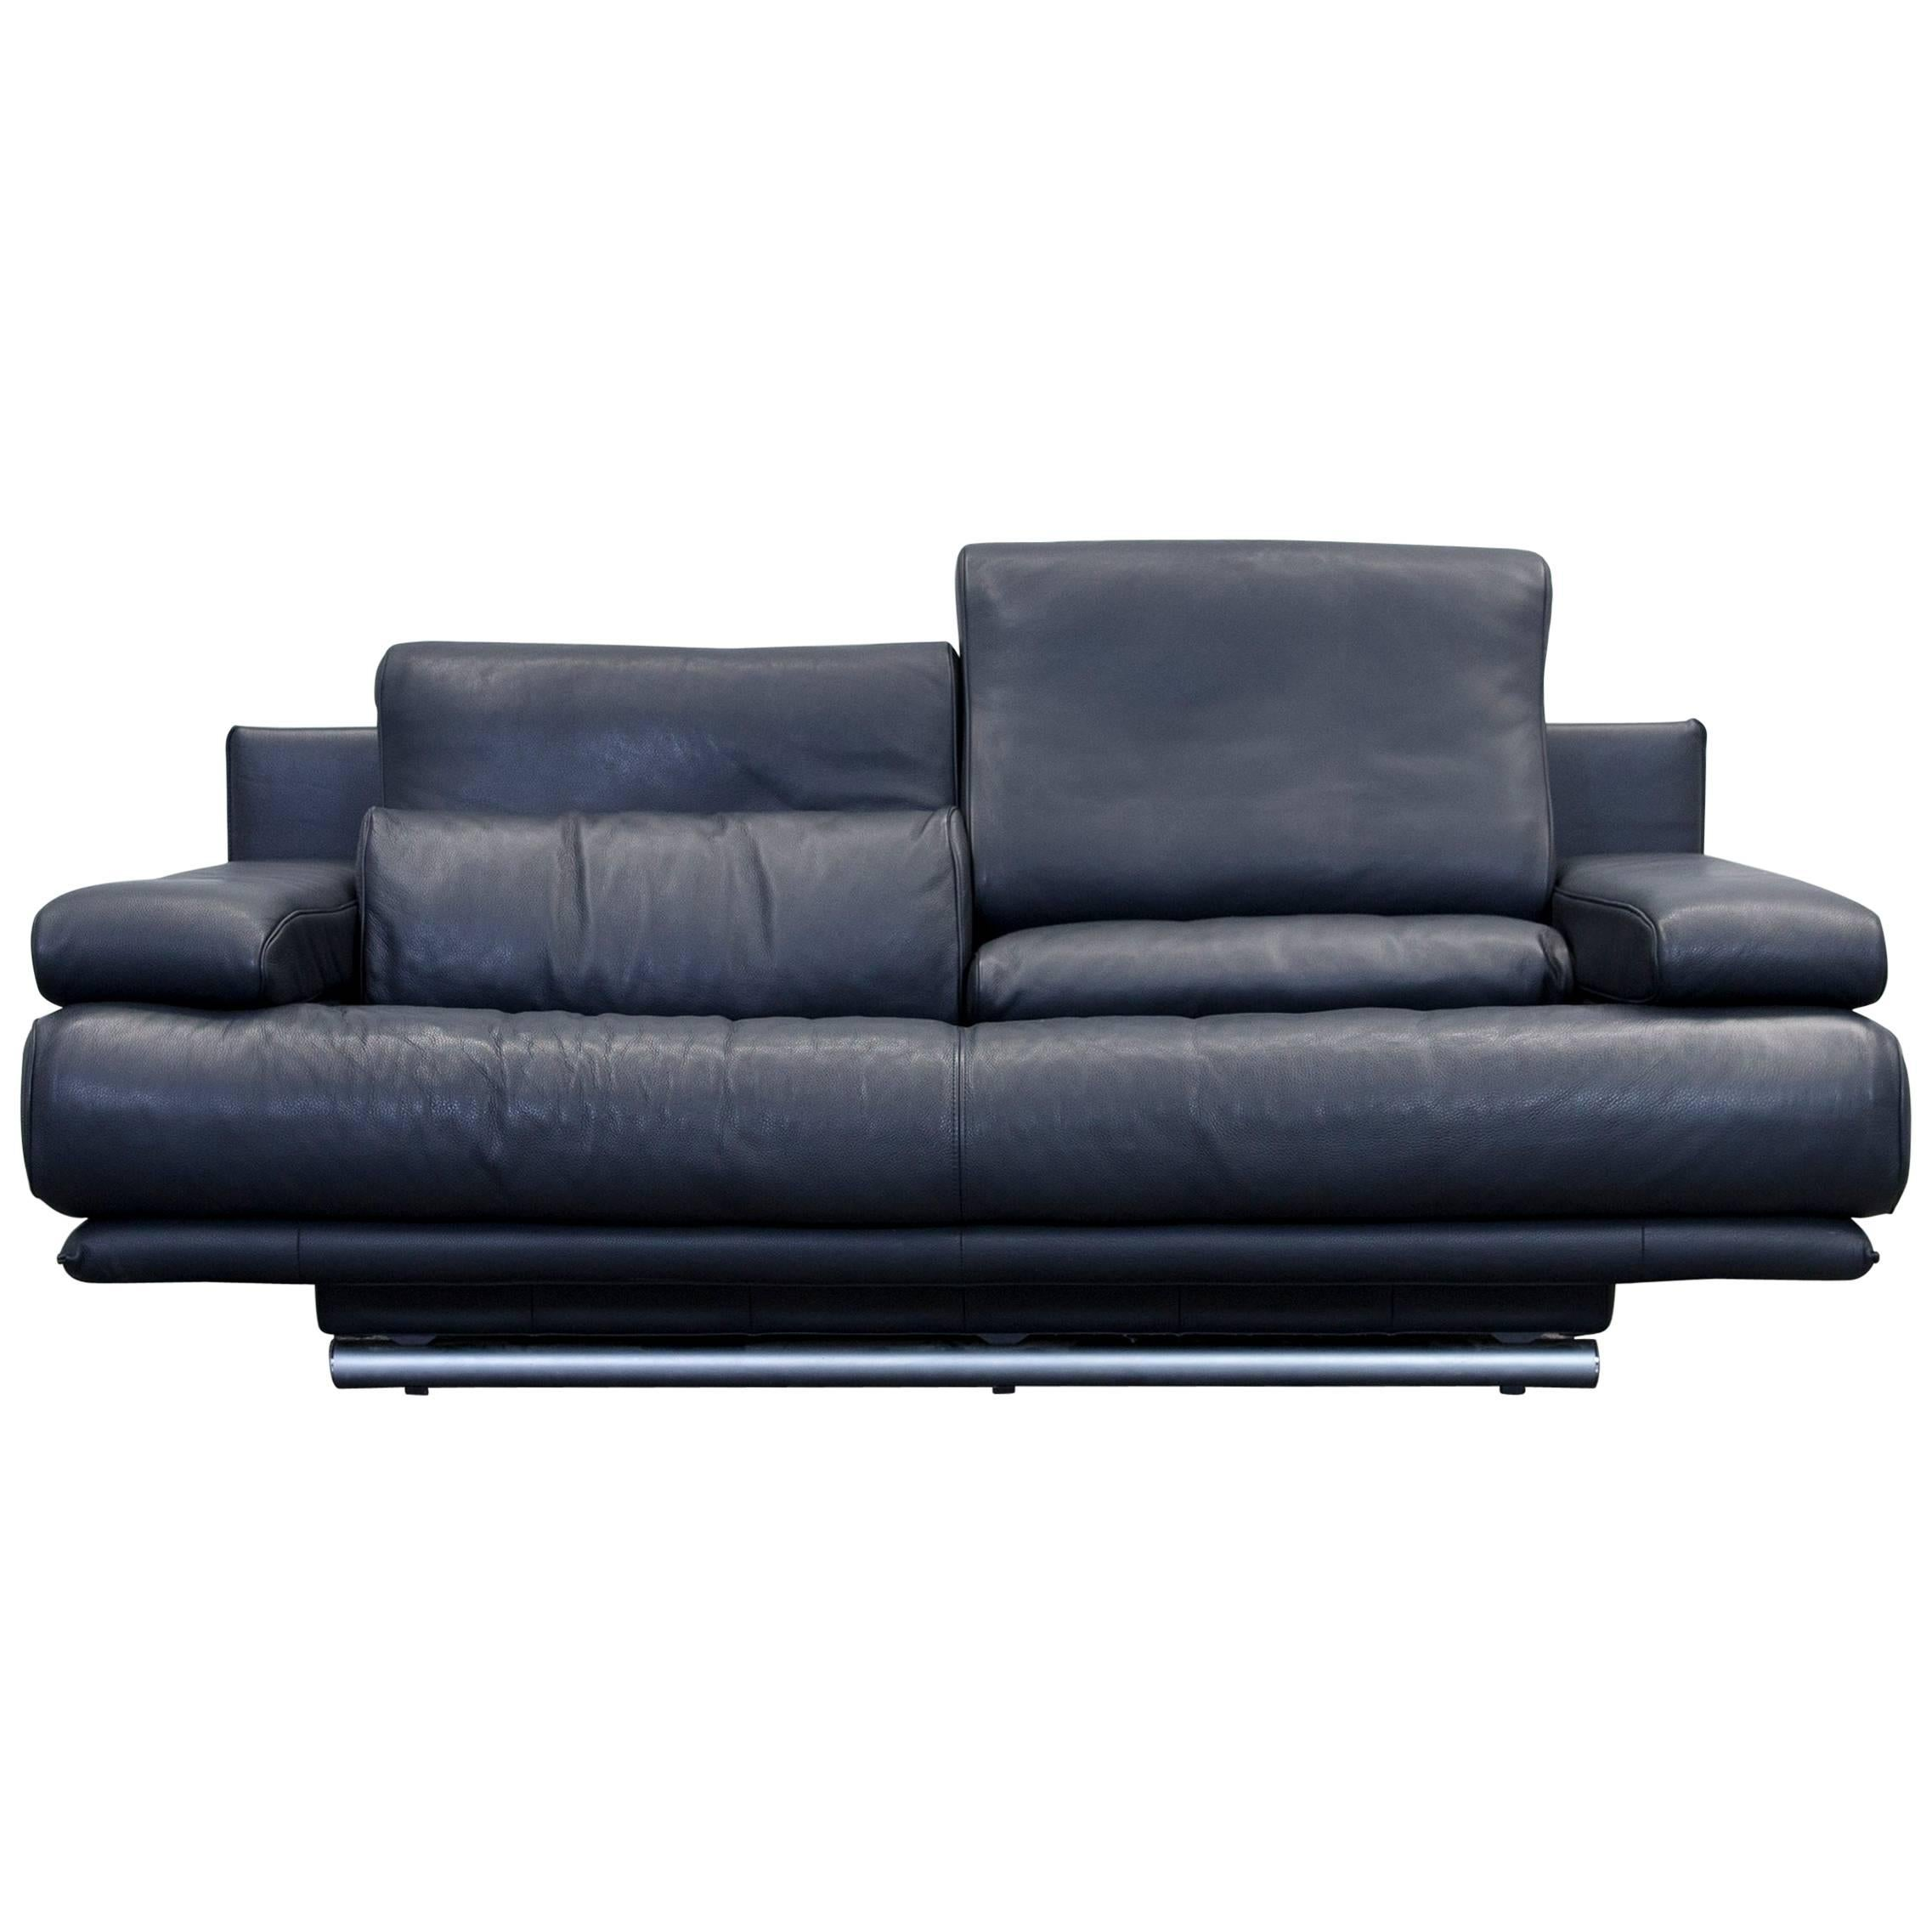 rolf benz sofa reviews dania leather review couch great com with